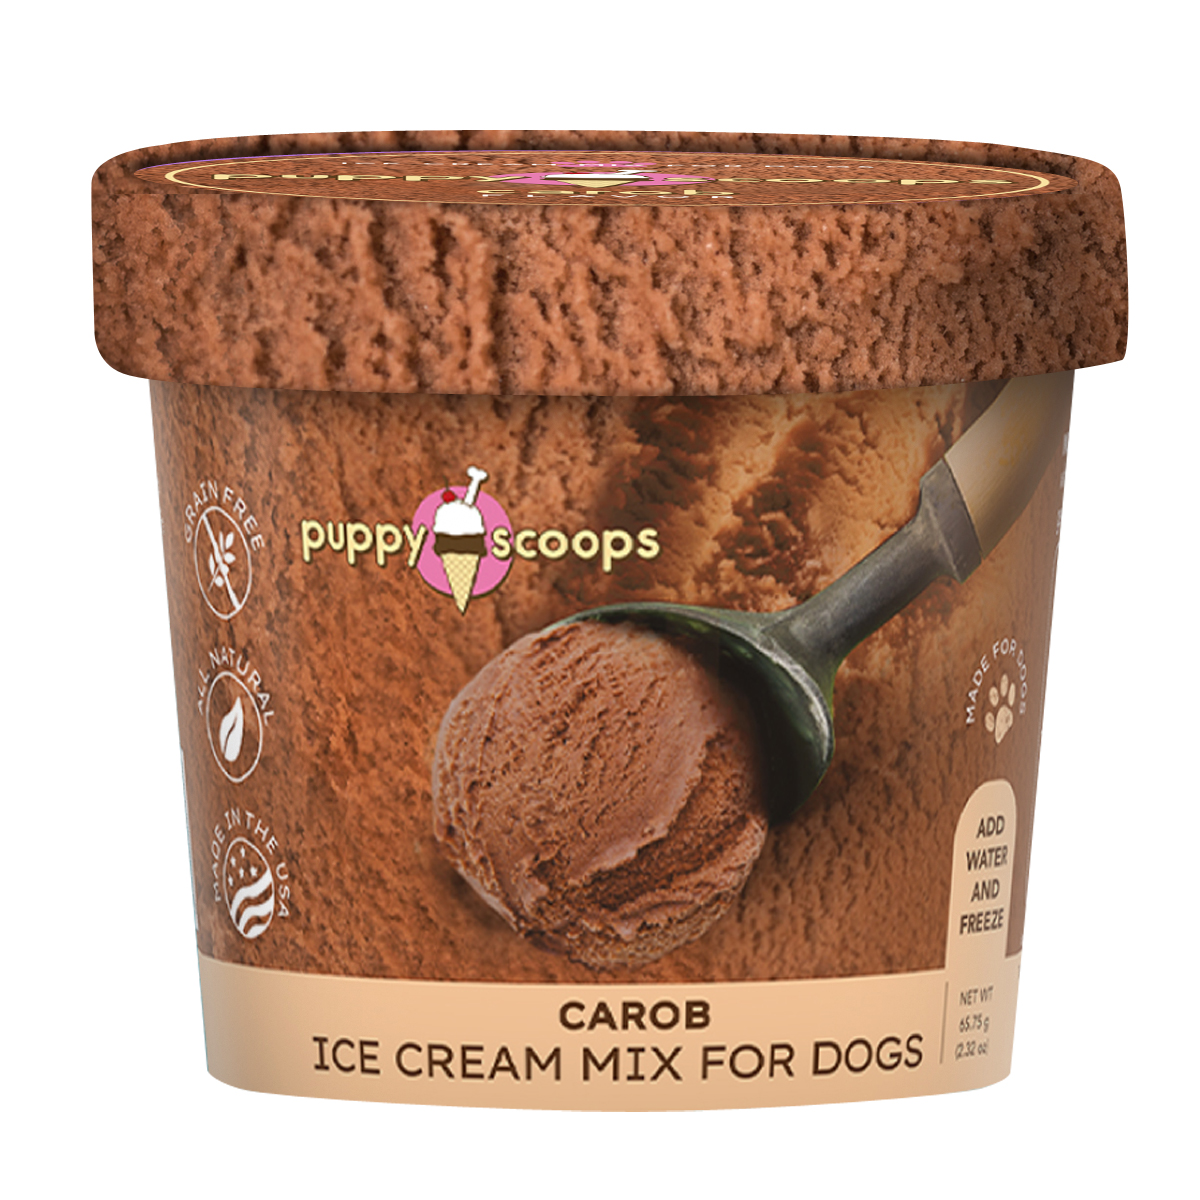 656832_CAROB_Mockup 3D versions of new sizes Puppy Scoops_4x4inch_v1_022120 (1).jpg